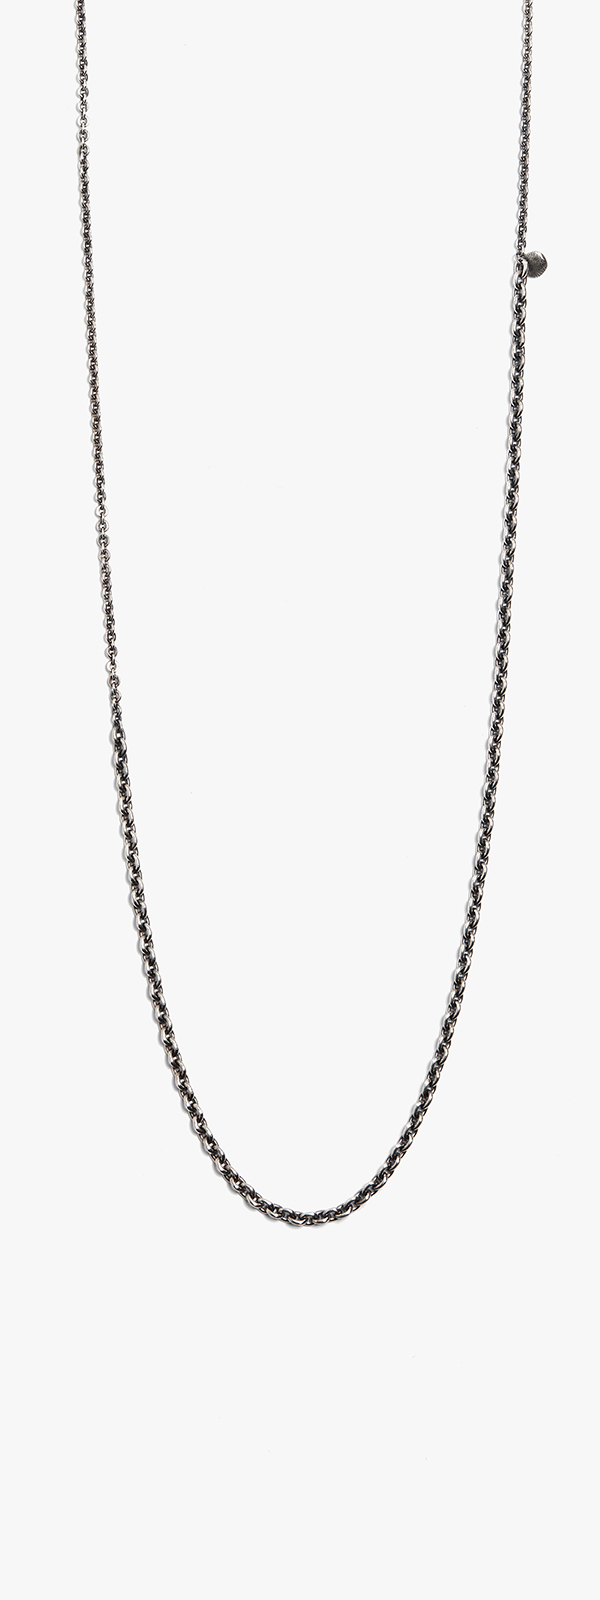 Image of Small / Medium Cable Necklace